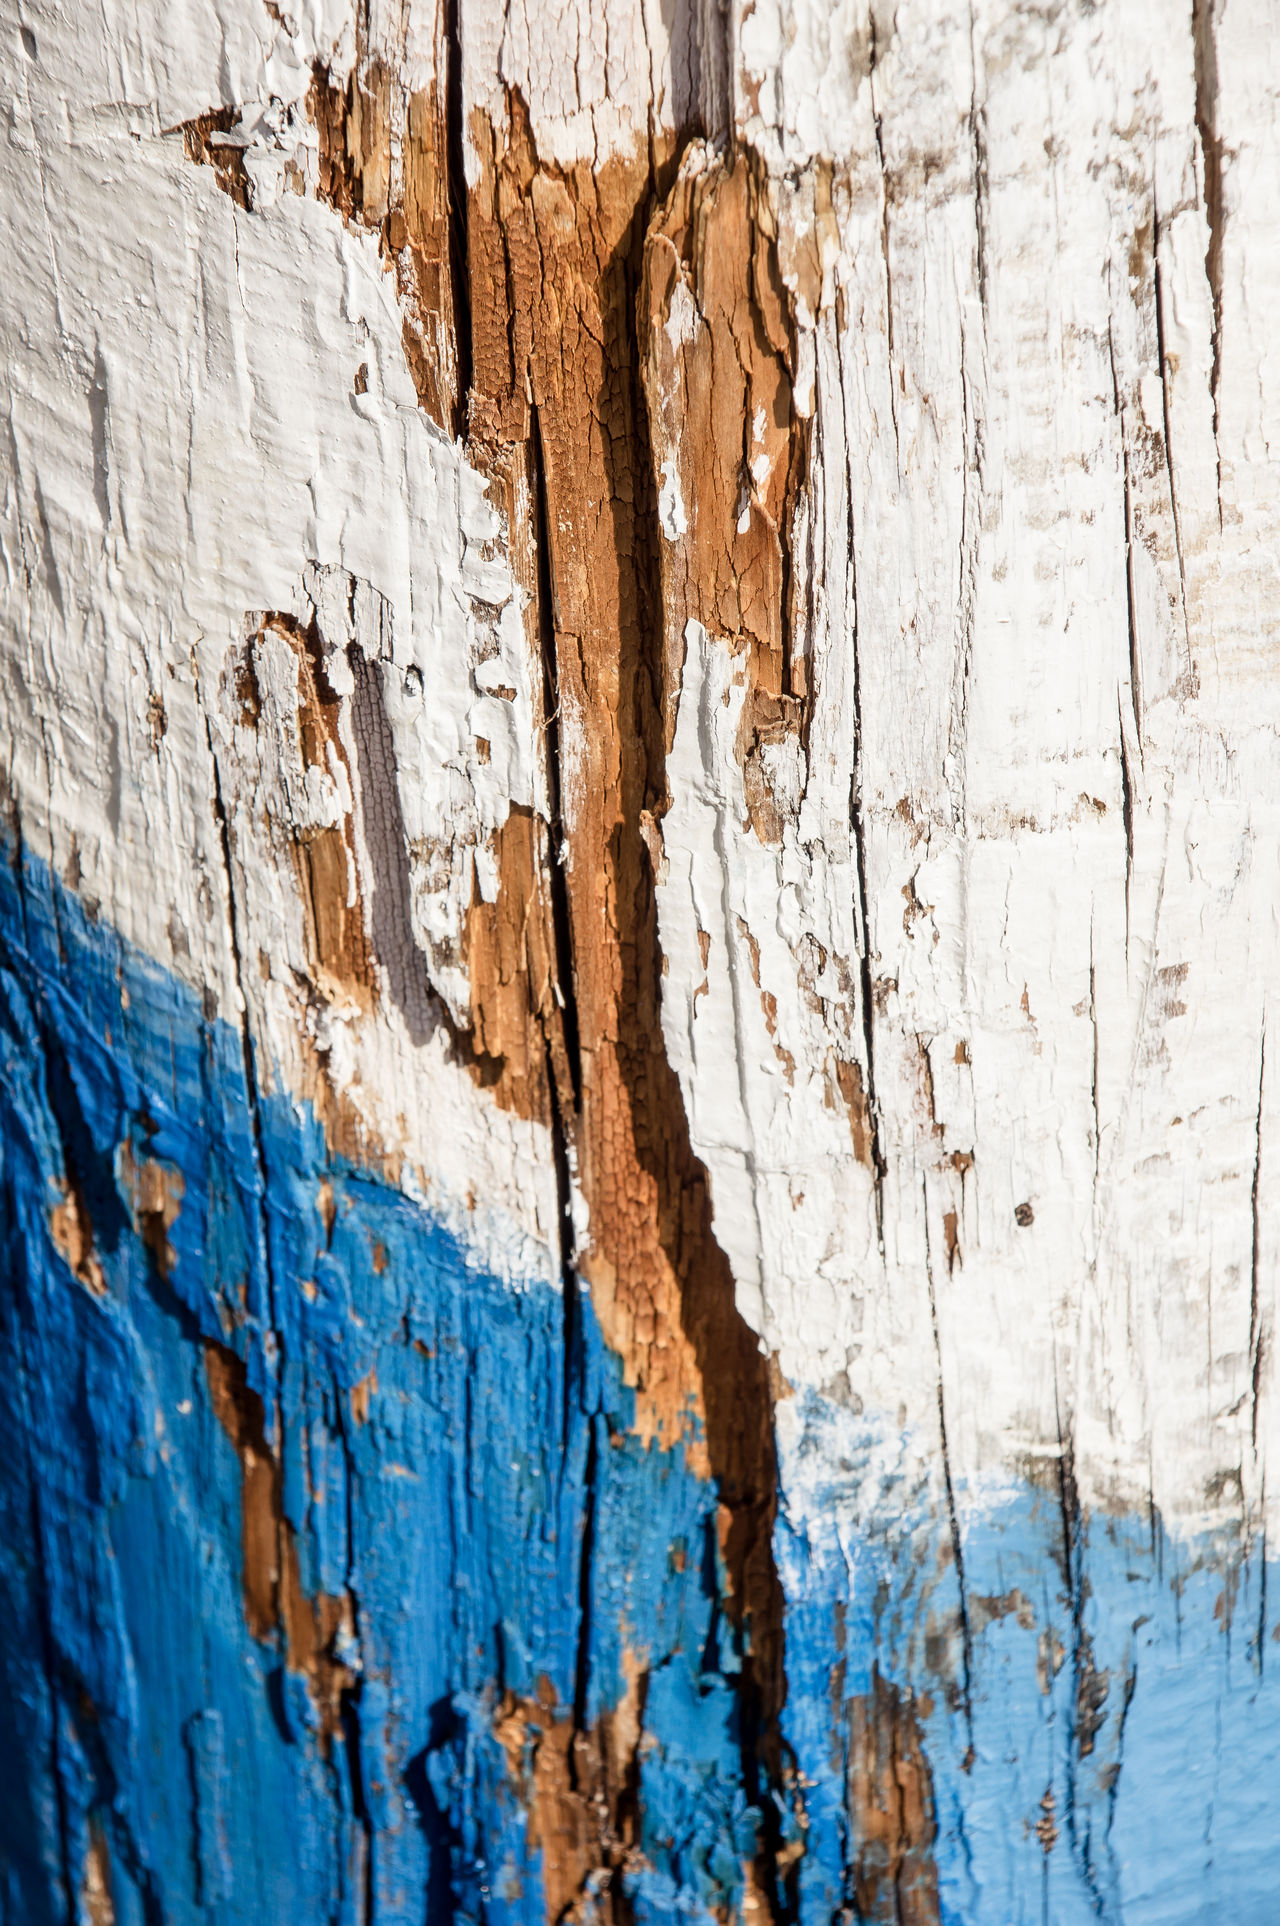 Background Backgrounds Bad Condition Blue Blue Color Close-up Copy Space Day Full Frame Nature No People Outdoors Painting Text Space Texture Textured  Weathered Weathered White White Color Wood Wood - Material Wooden Wooden Background Wooden Texture